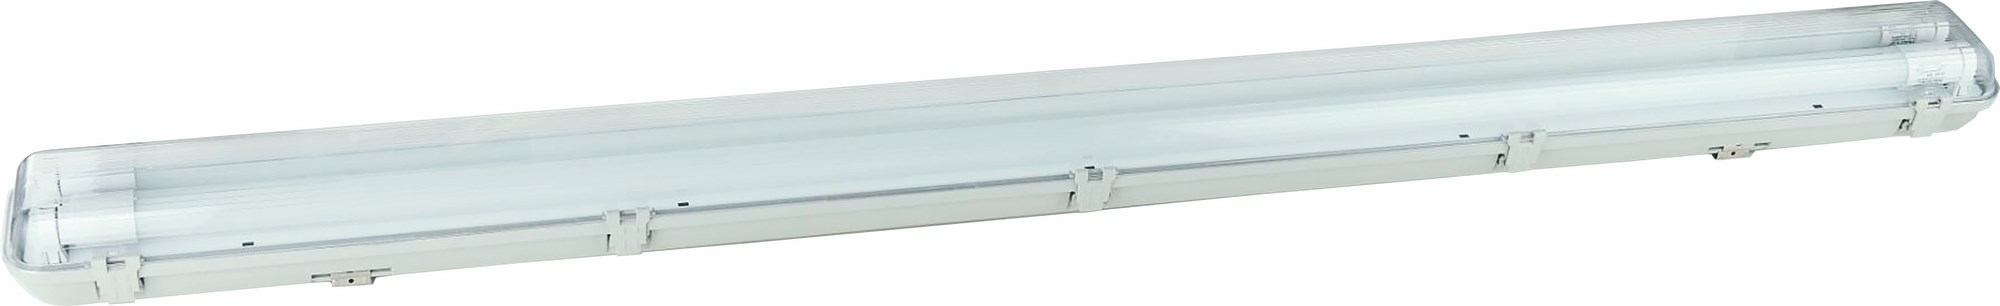 TRUST LED PS 2xT8/120CM